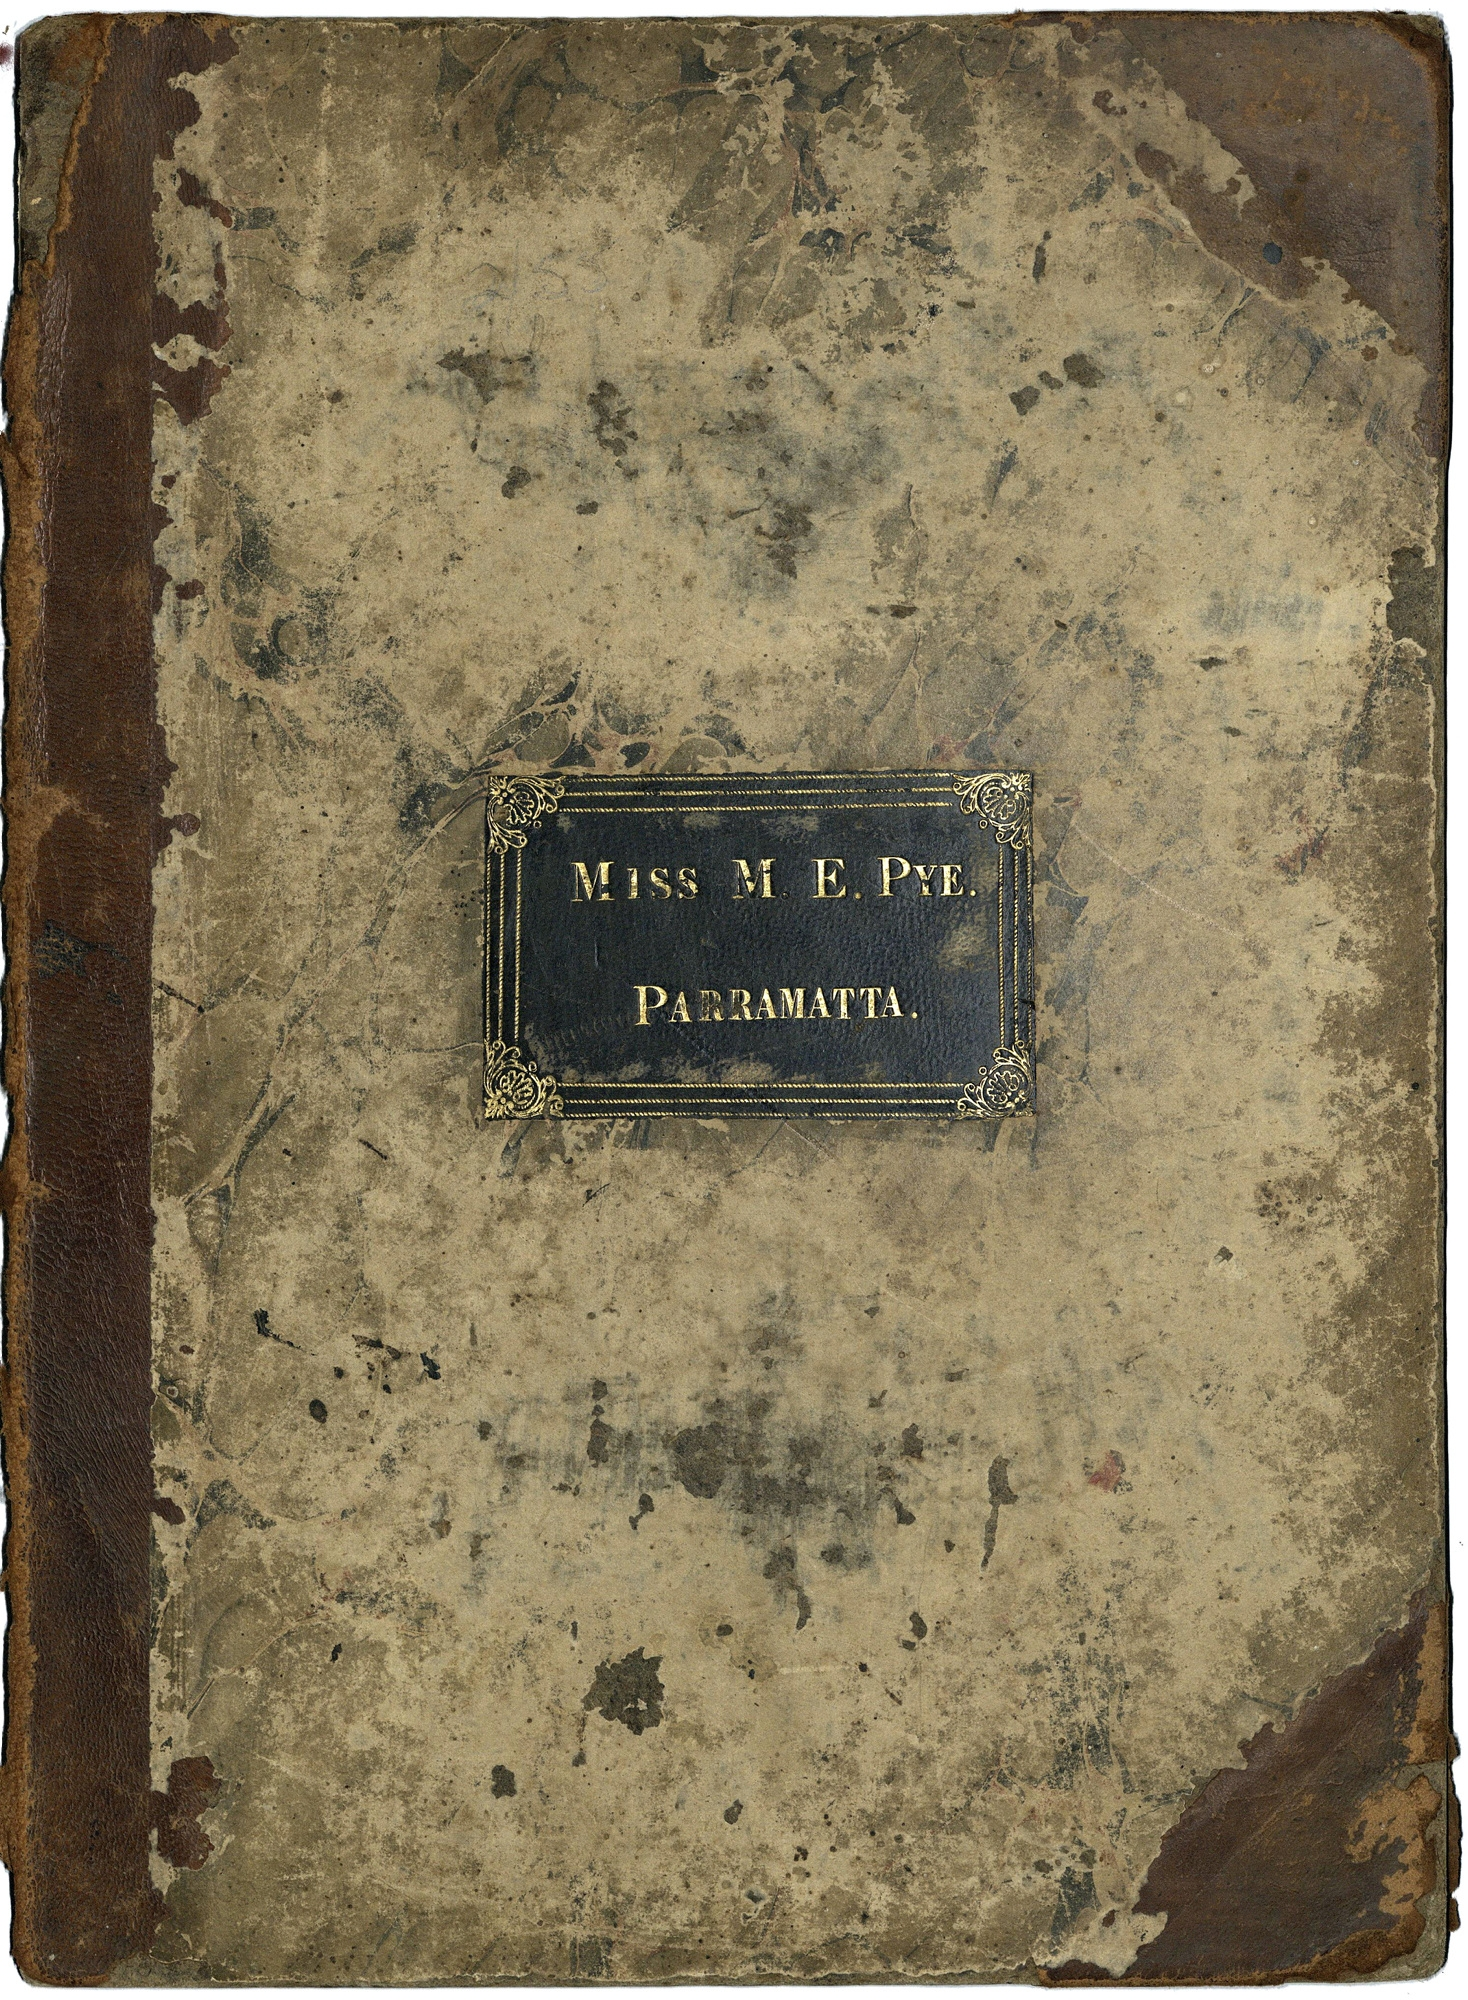 Cover of bound volume of sheet music belonging to Miss M.E. Pye, Parramatta